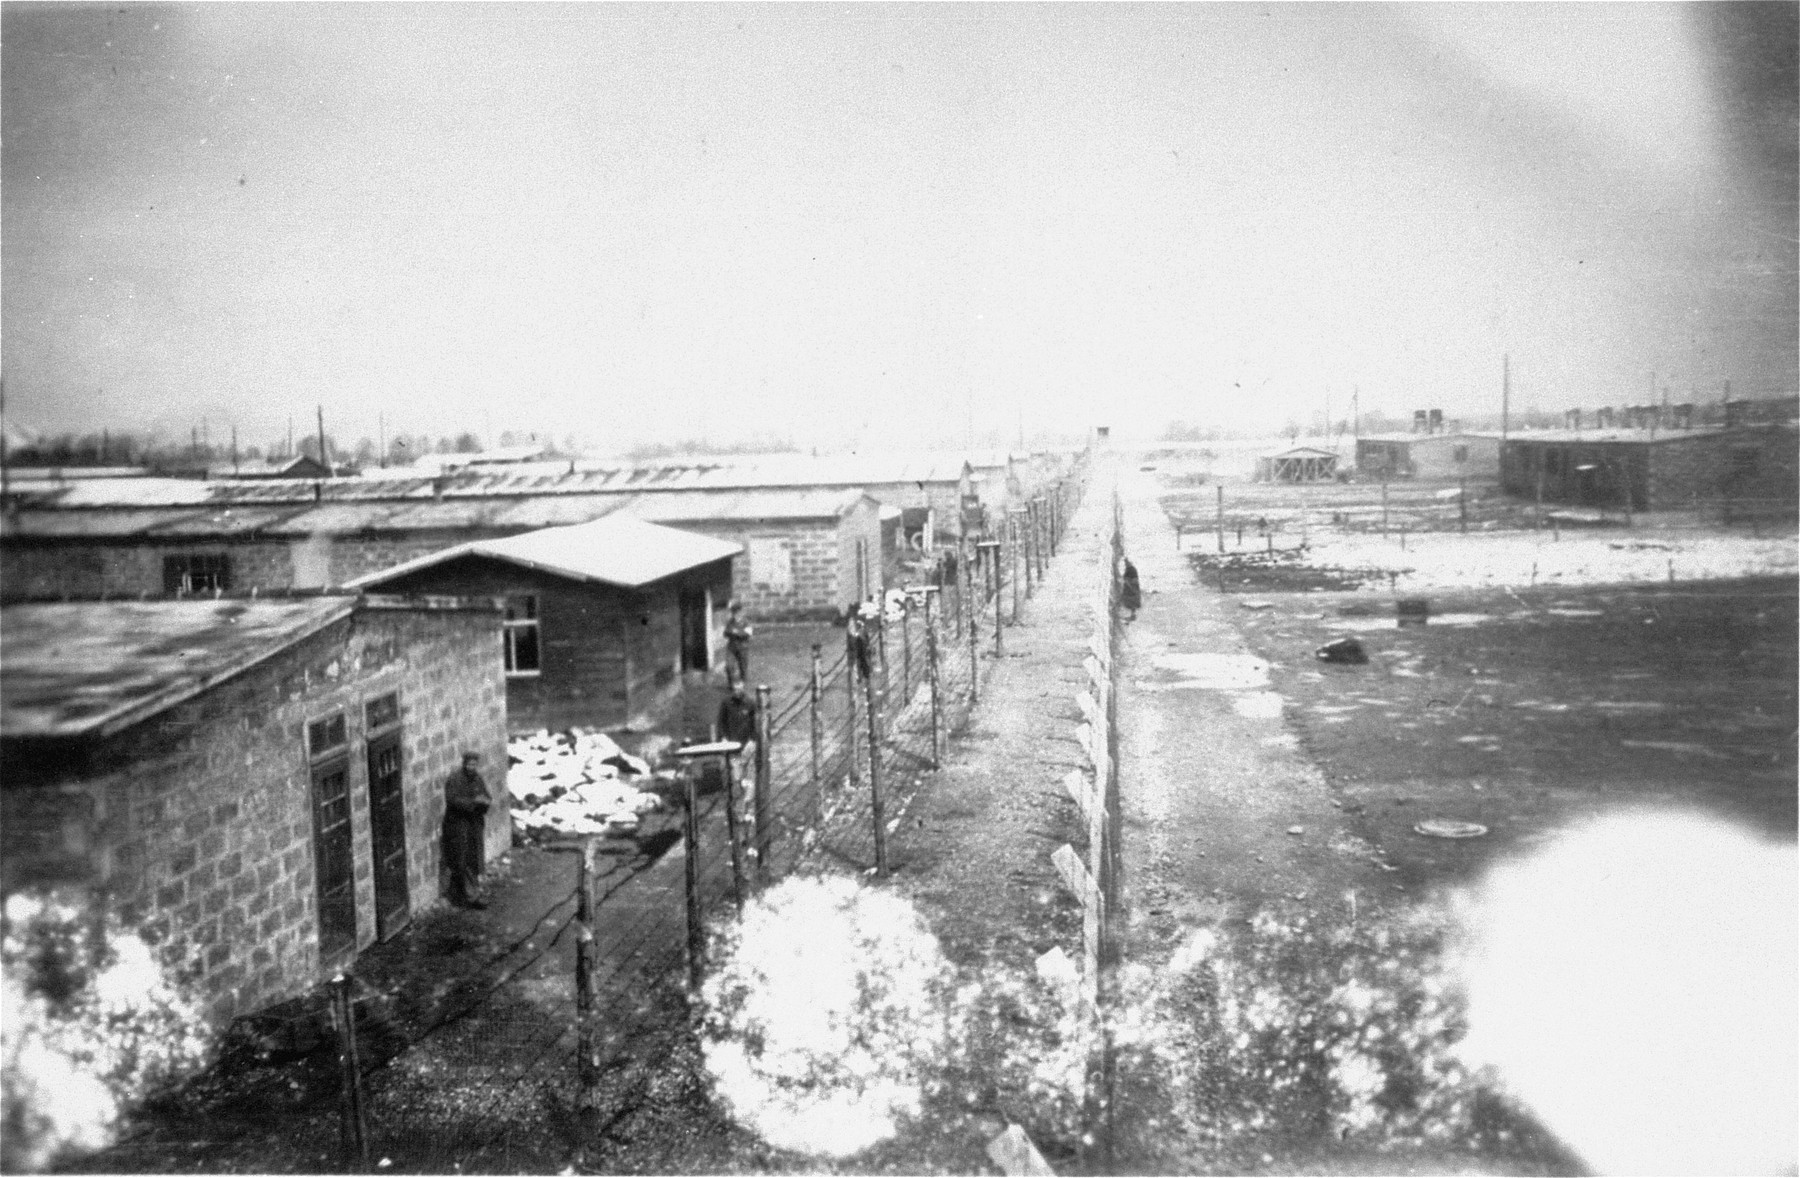 Rear view of the Dachau concentration camp, showing the division between two sectors of the camp and a pile of corpses beside the barracks.